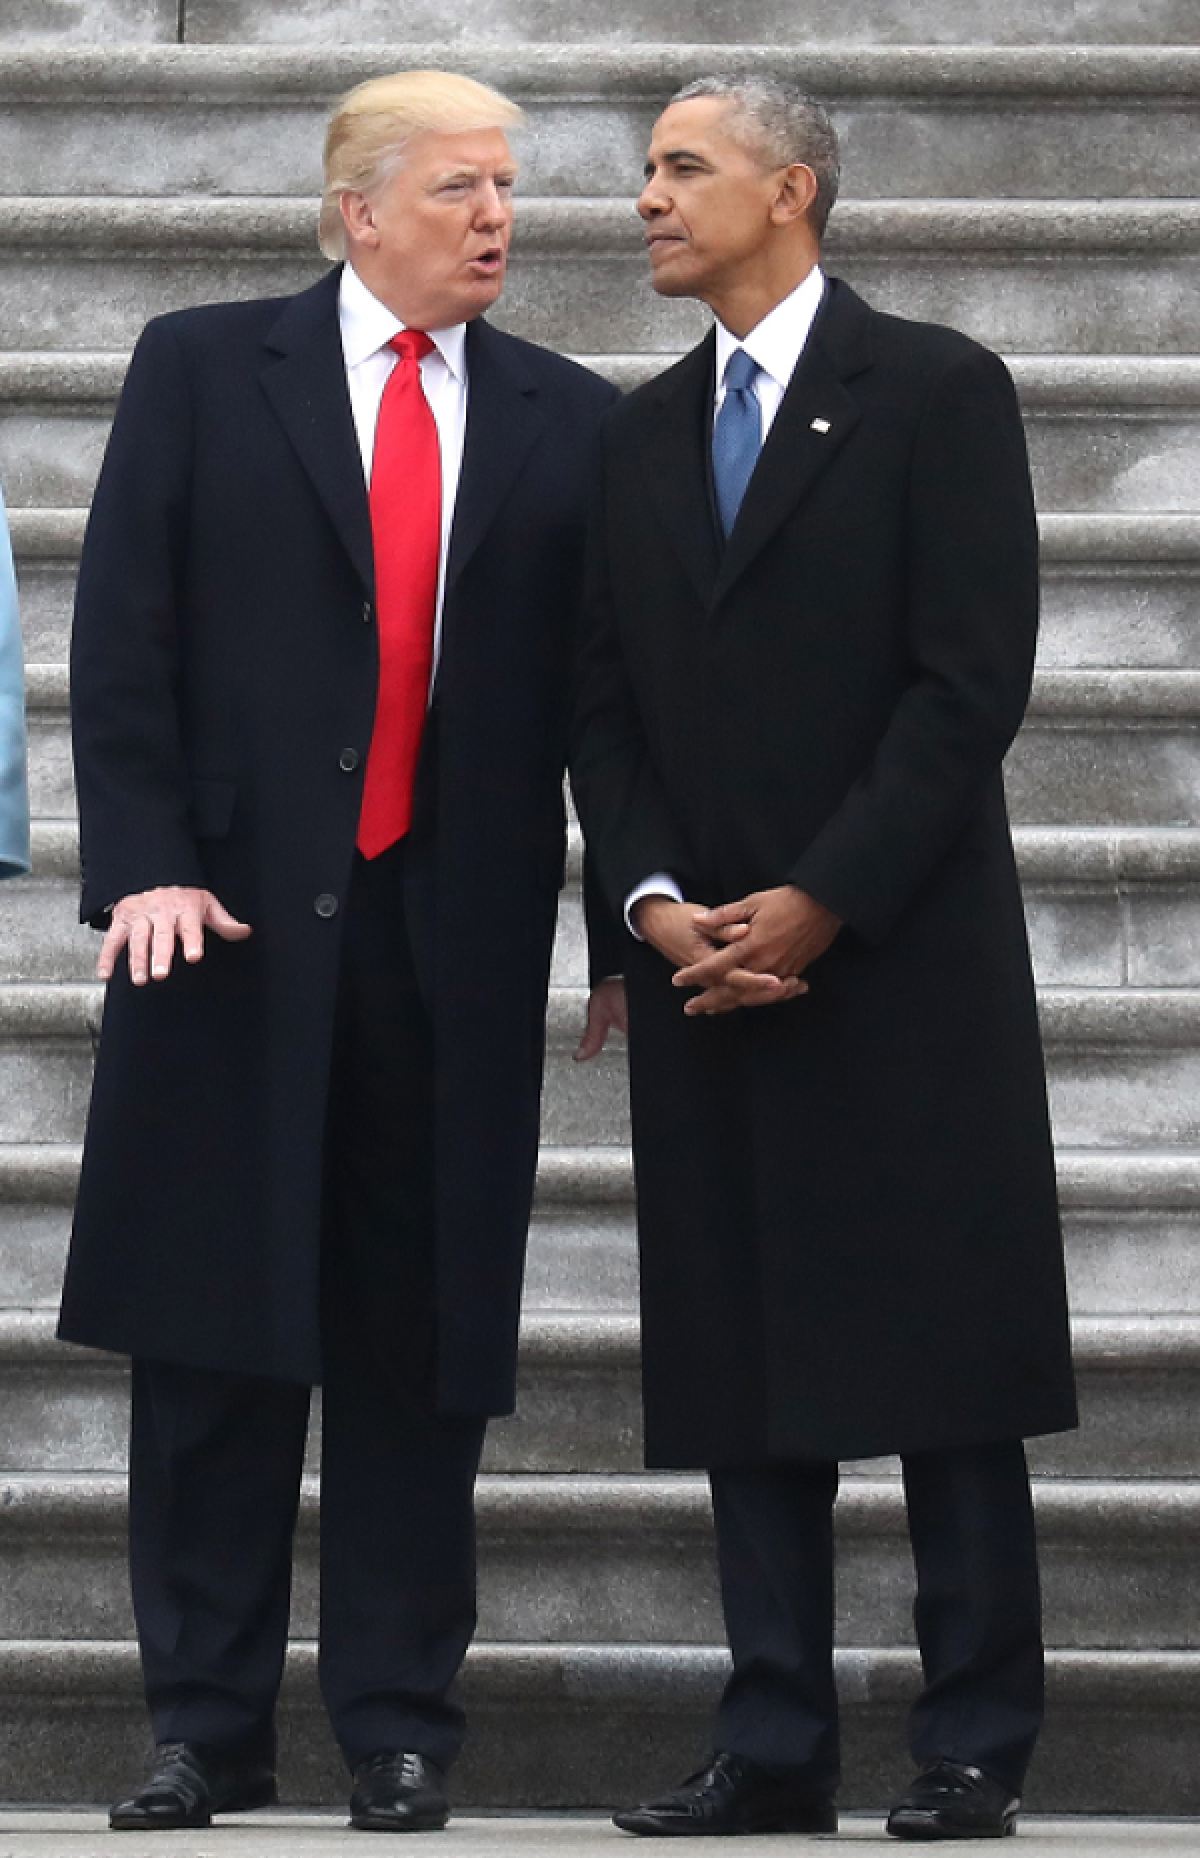 President Donald Trump and former President Barack Obama (Credit: REUTERS/Rob Carr/Pool)